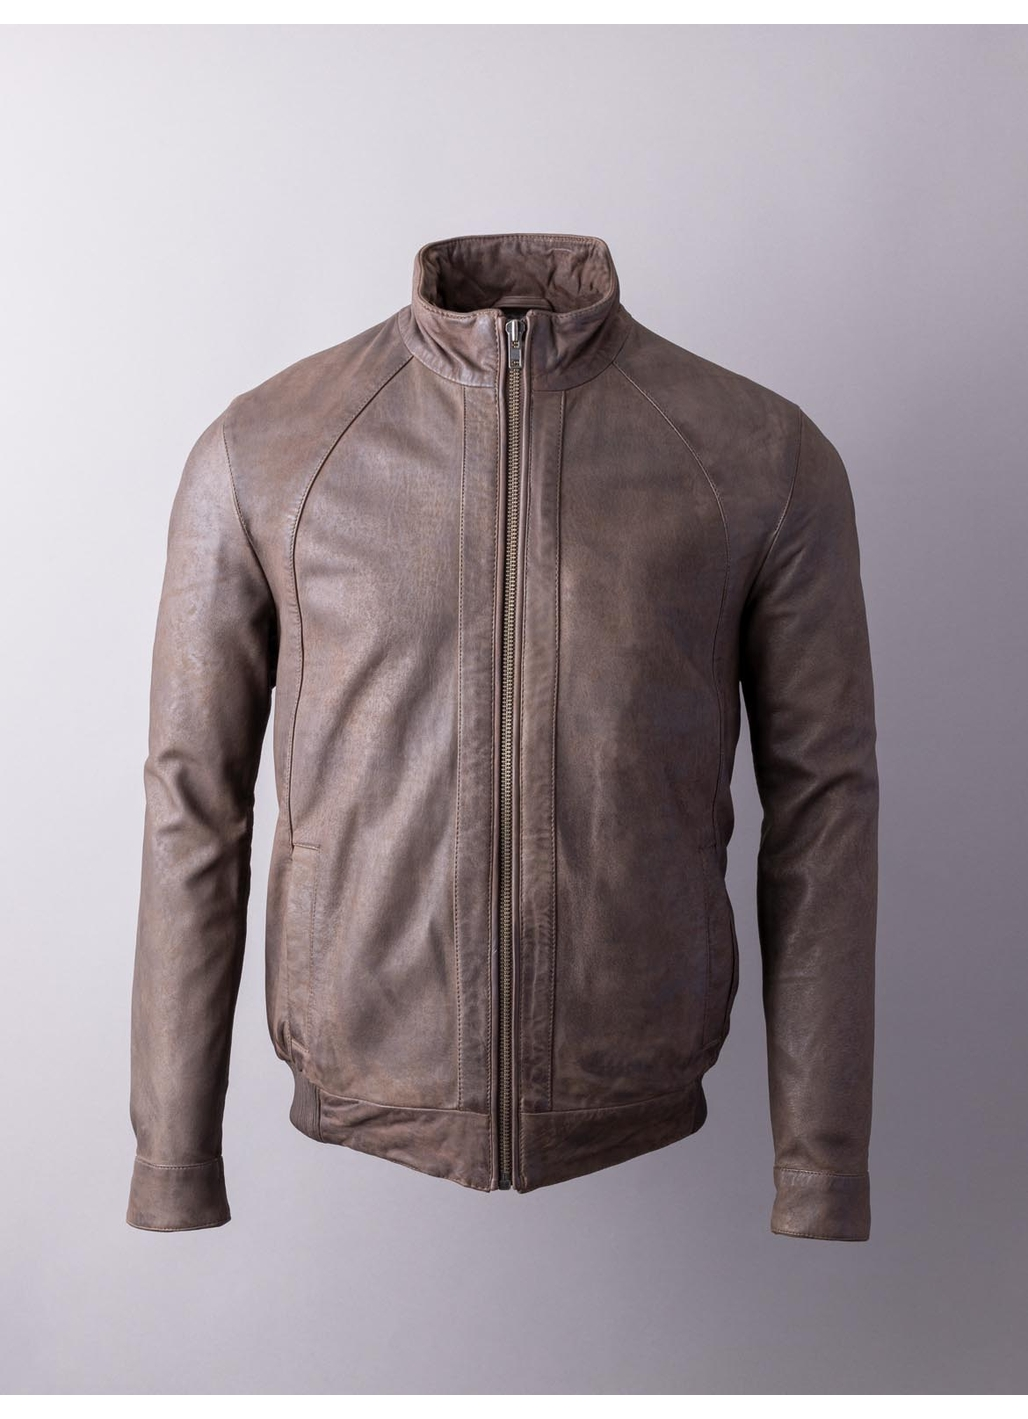 Paveyark Leather Bomber Jacket in Chocolate Brown